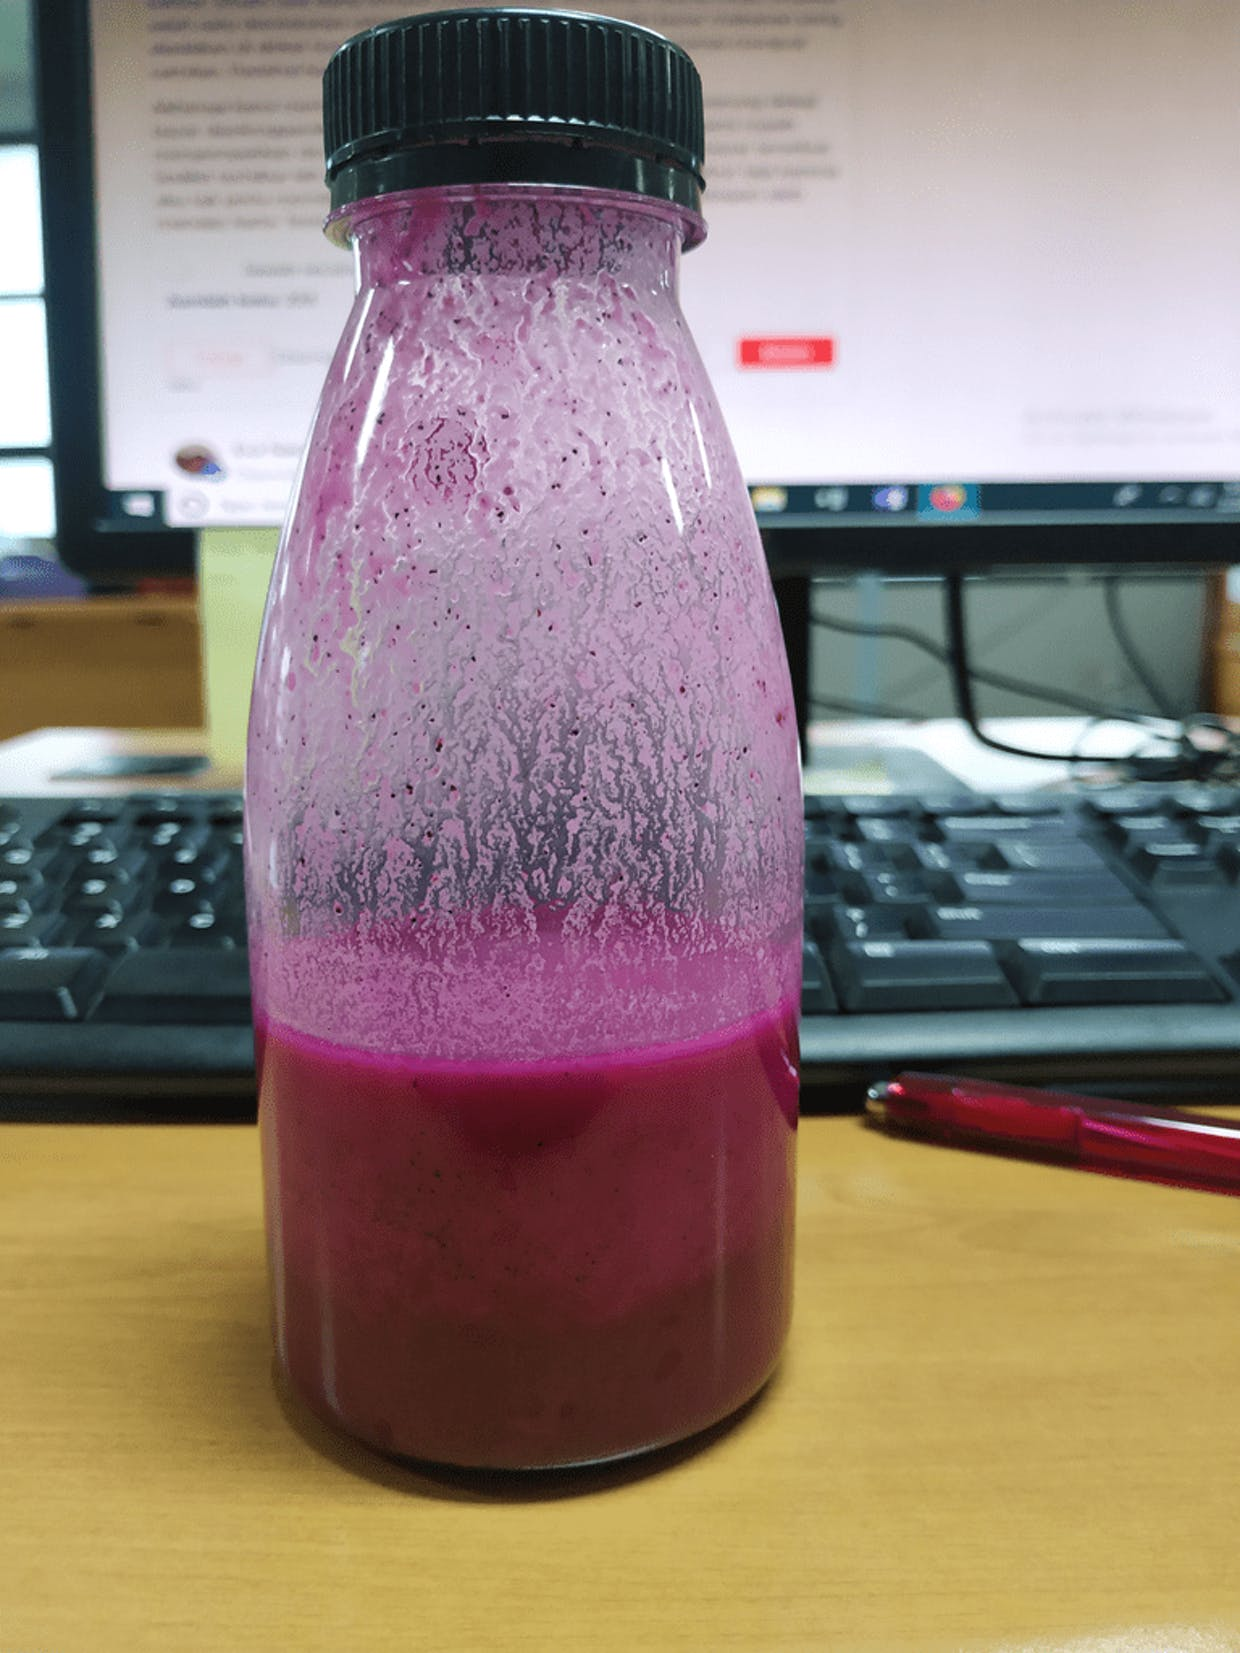 Jus Buah Naga. Photo by me.